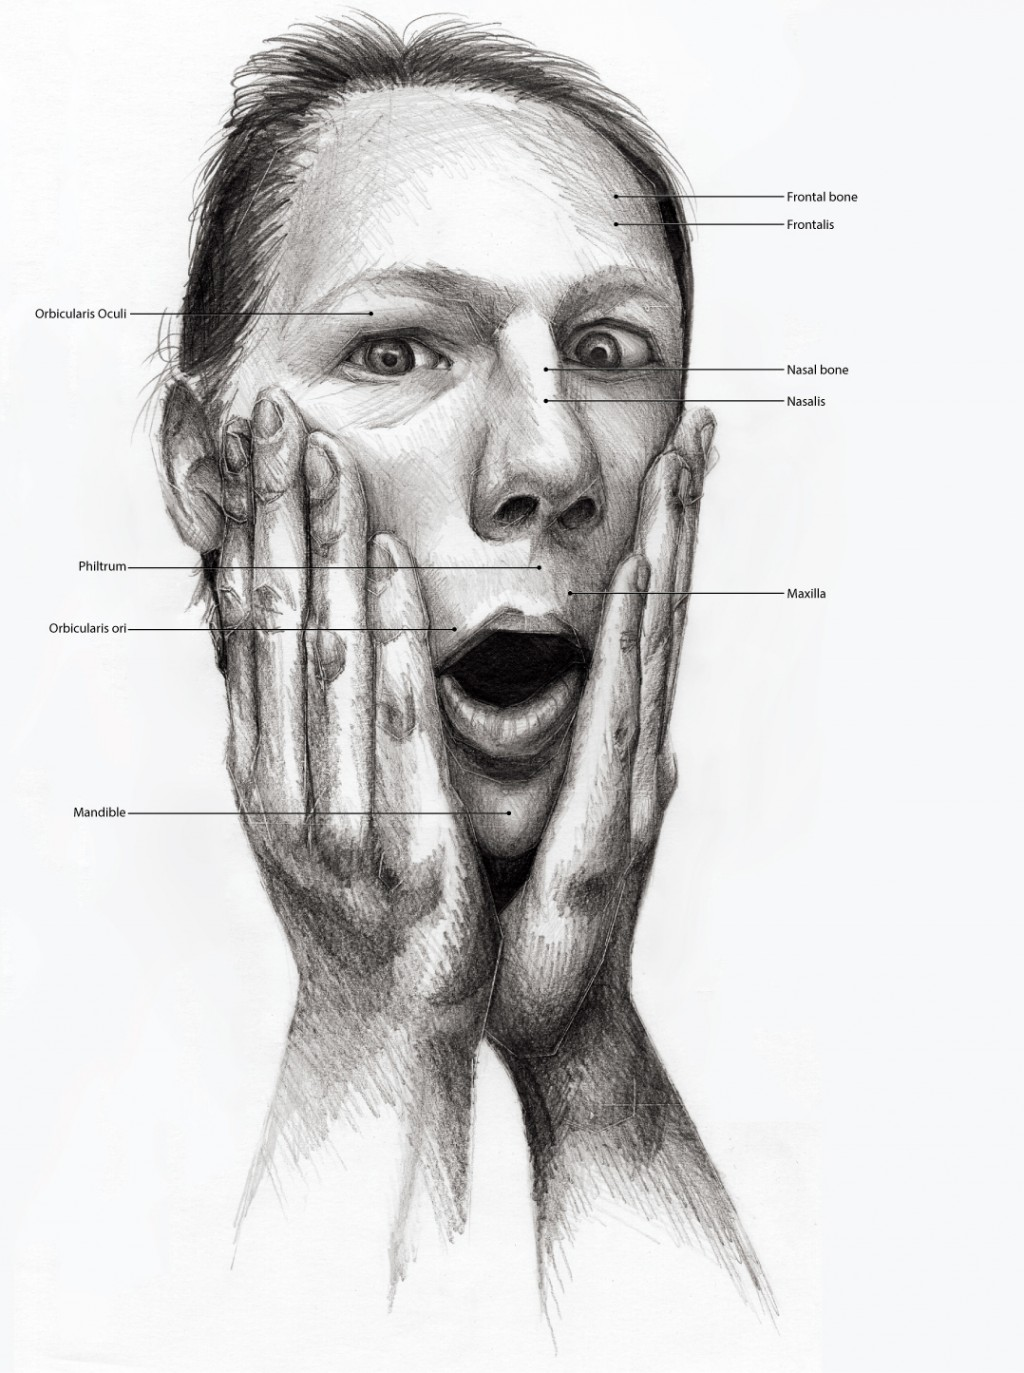 Black and White illustration of someone holding their breath. Anatomical features labeled.